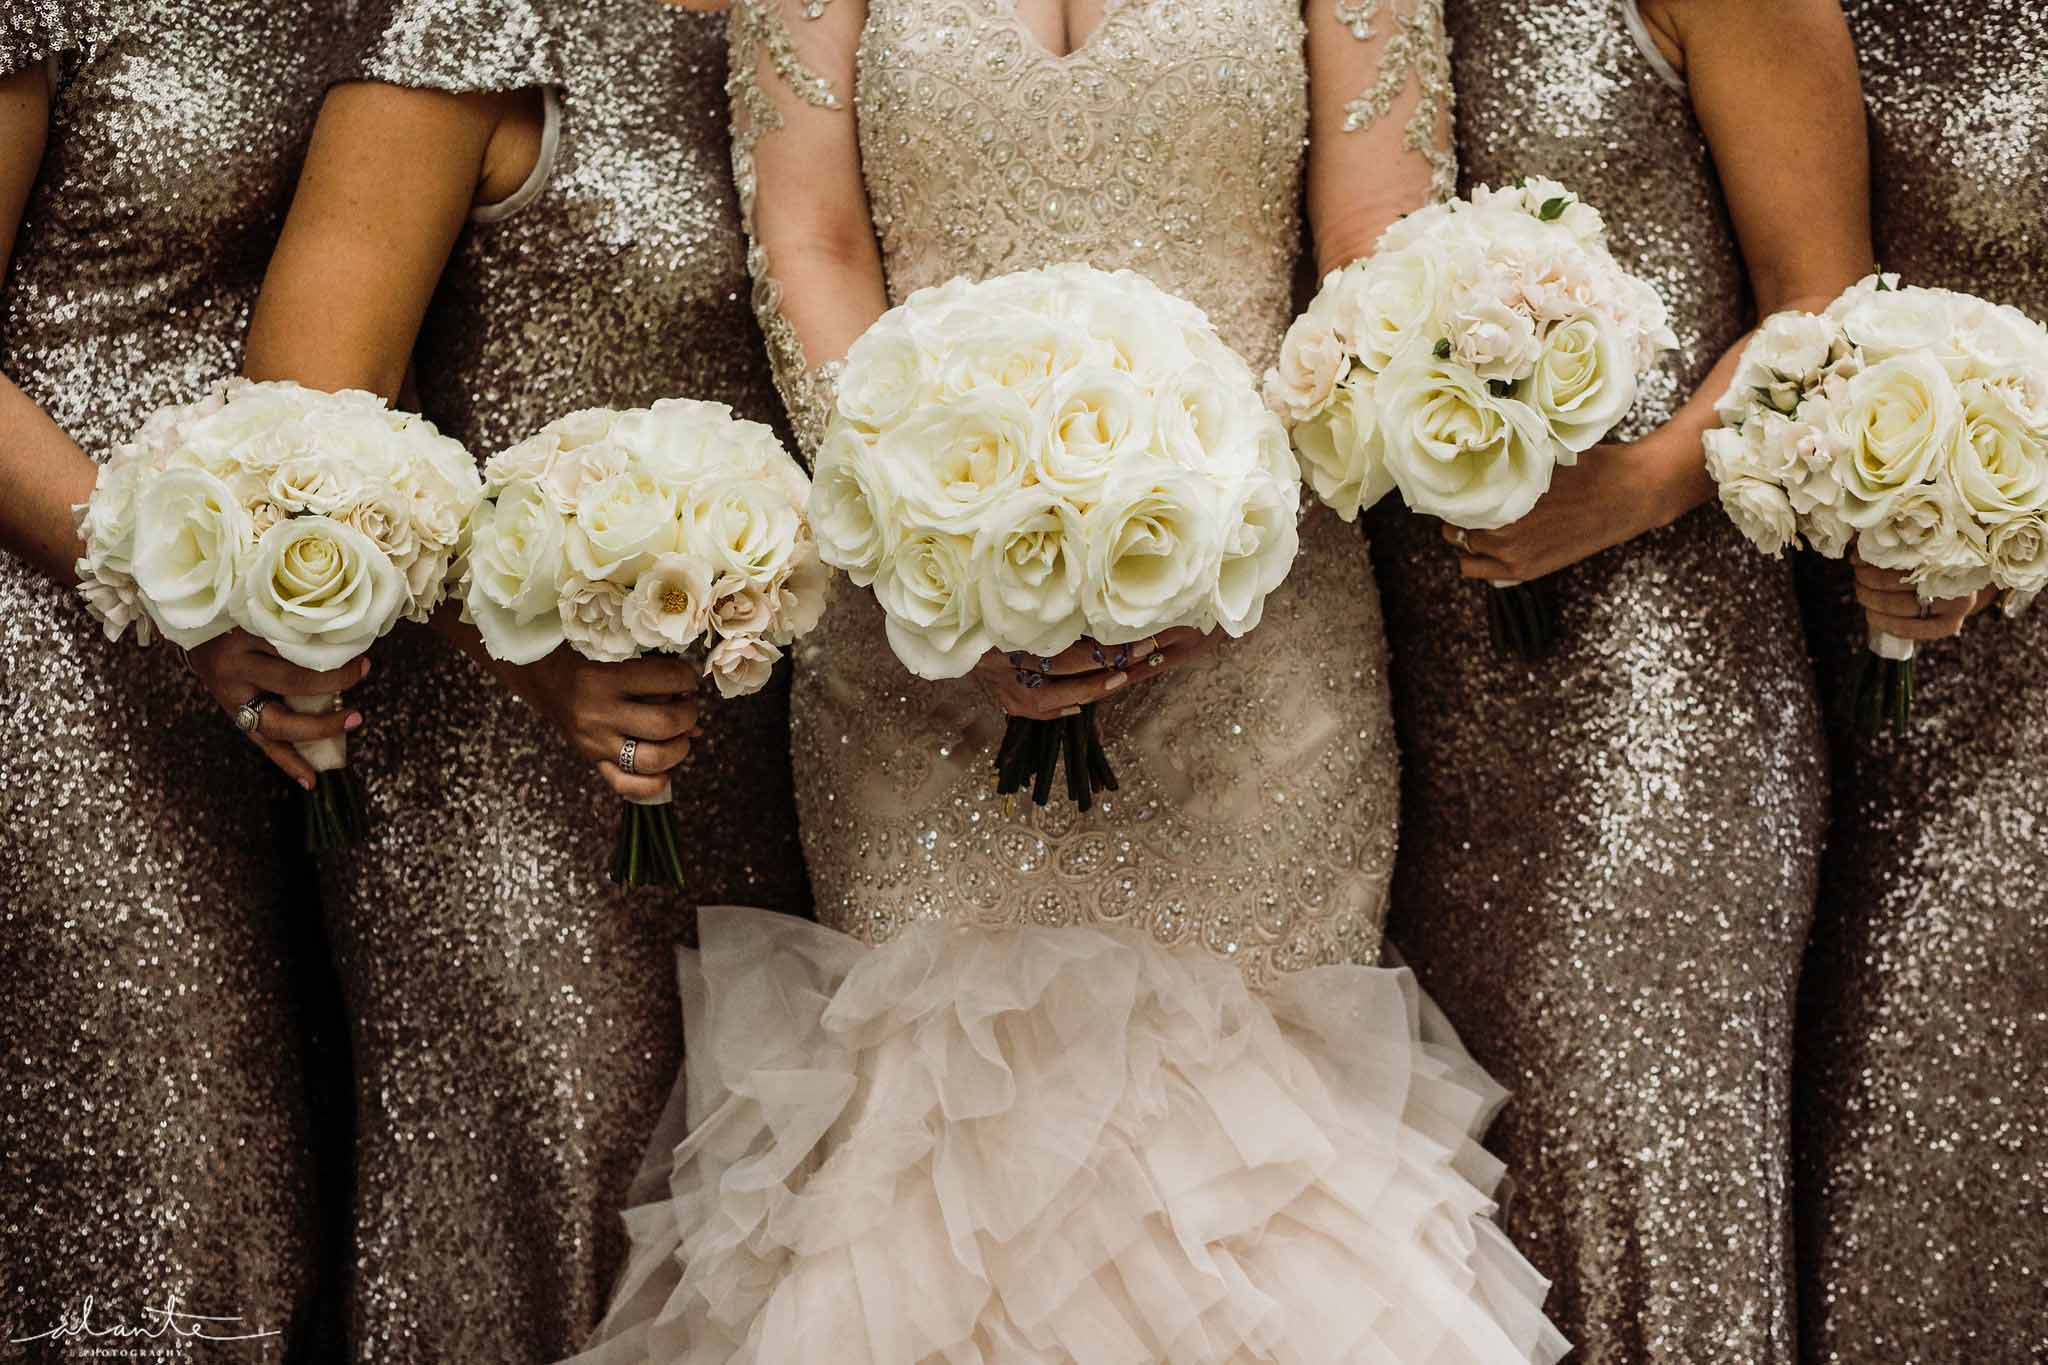 Bridal bouquets of white roses - Luxury Winter Wedding at the Four Seasons by Flora Nova Design Seattle